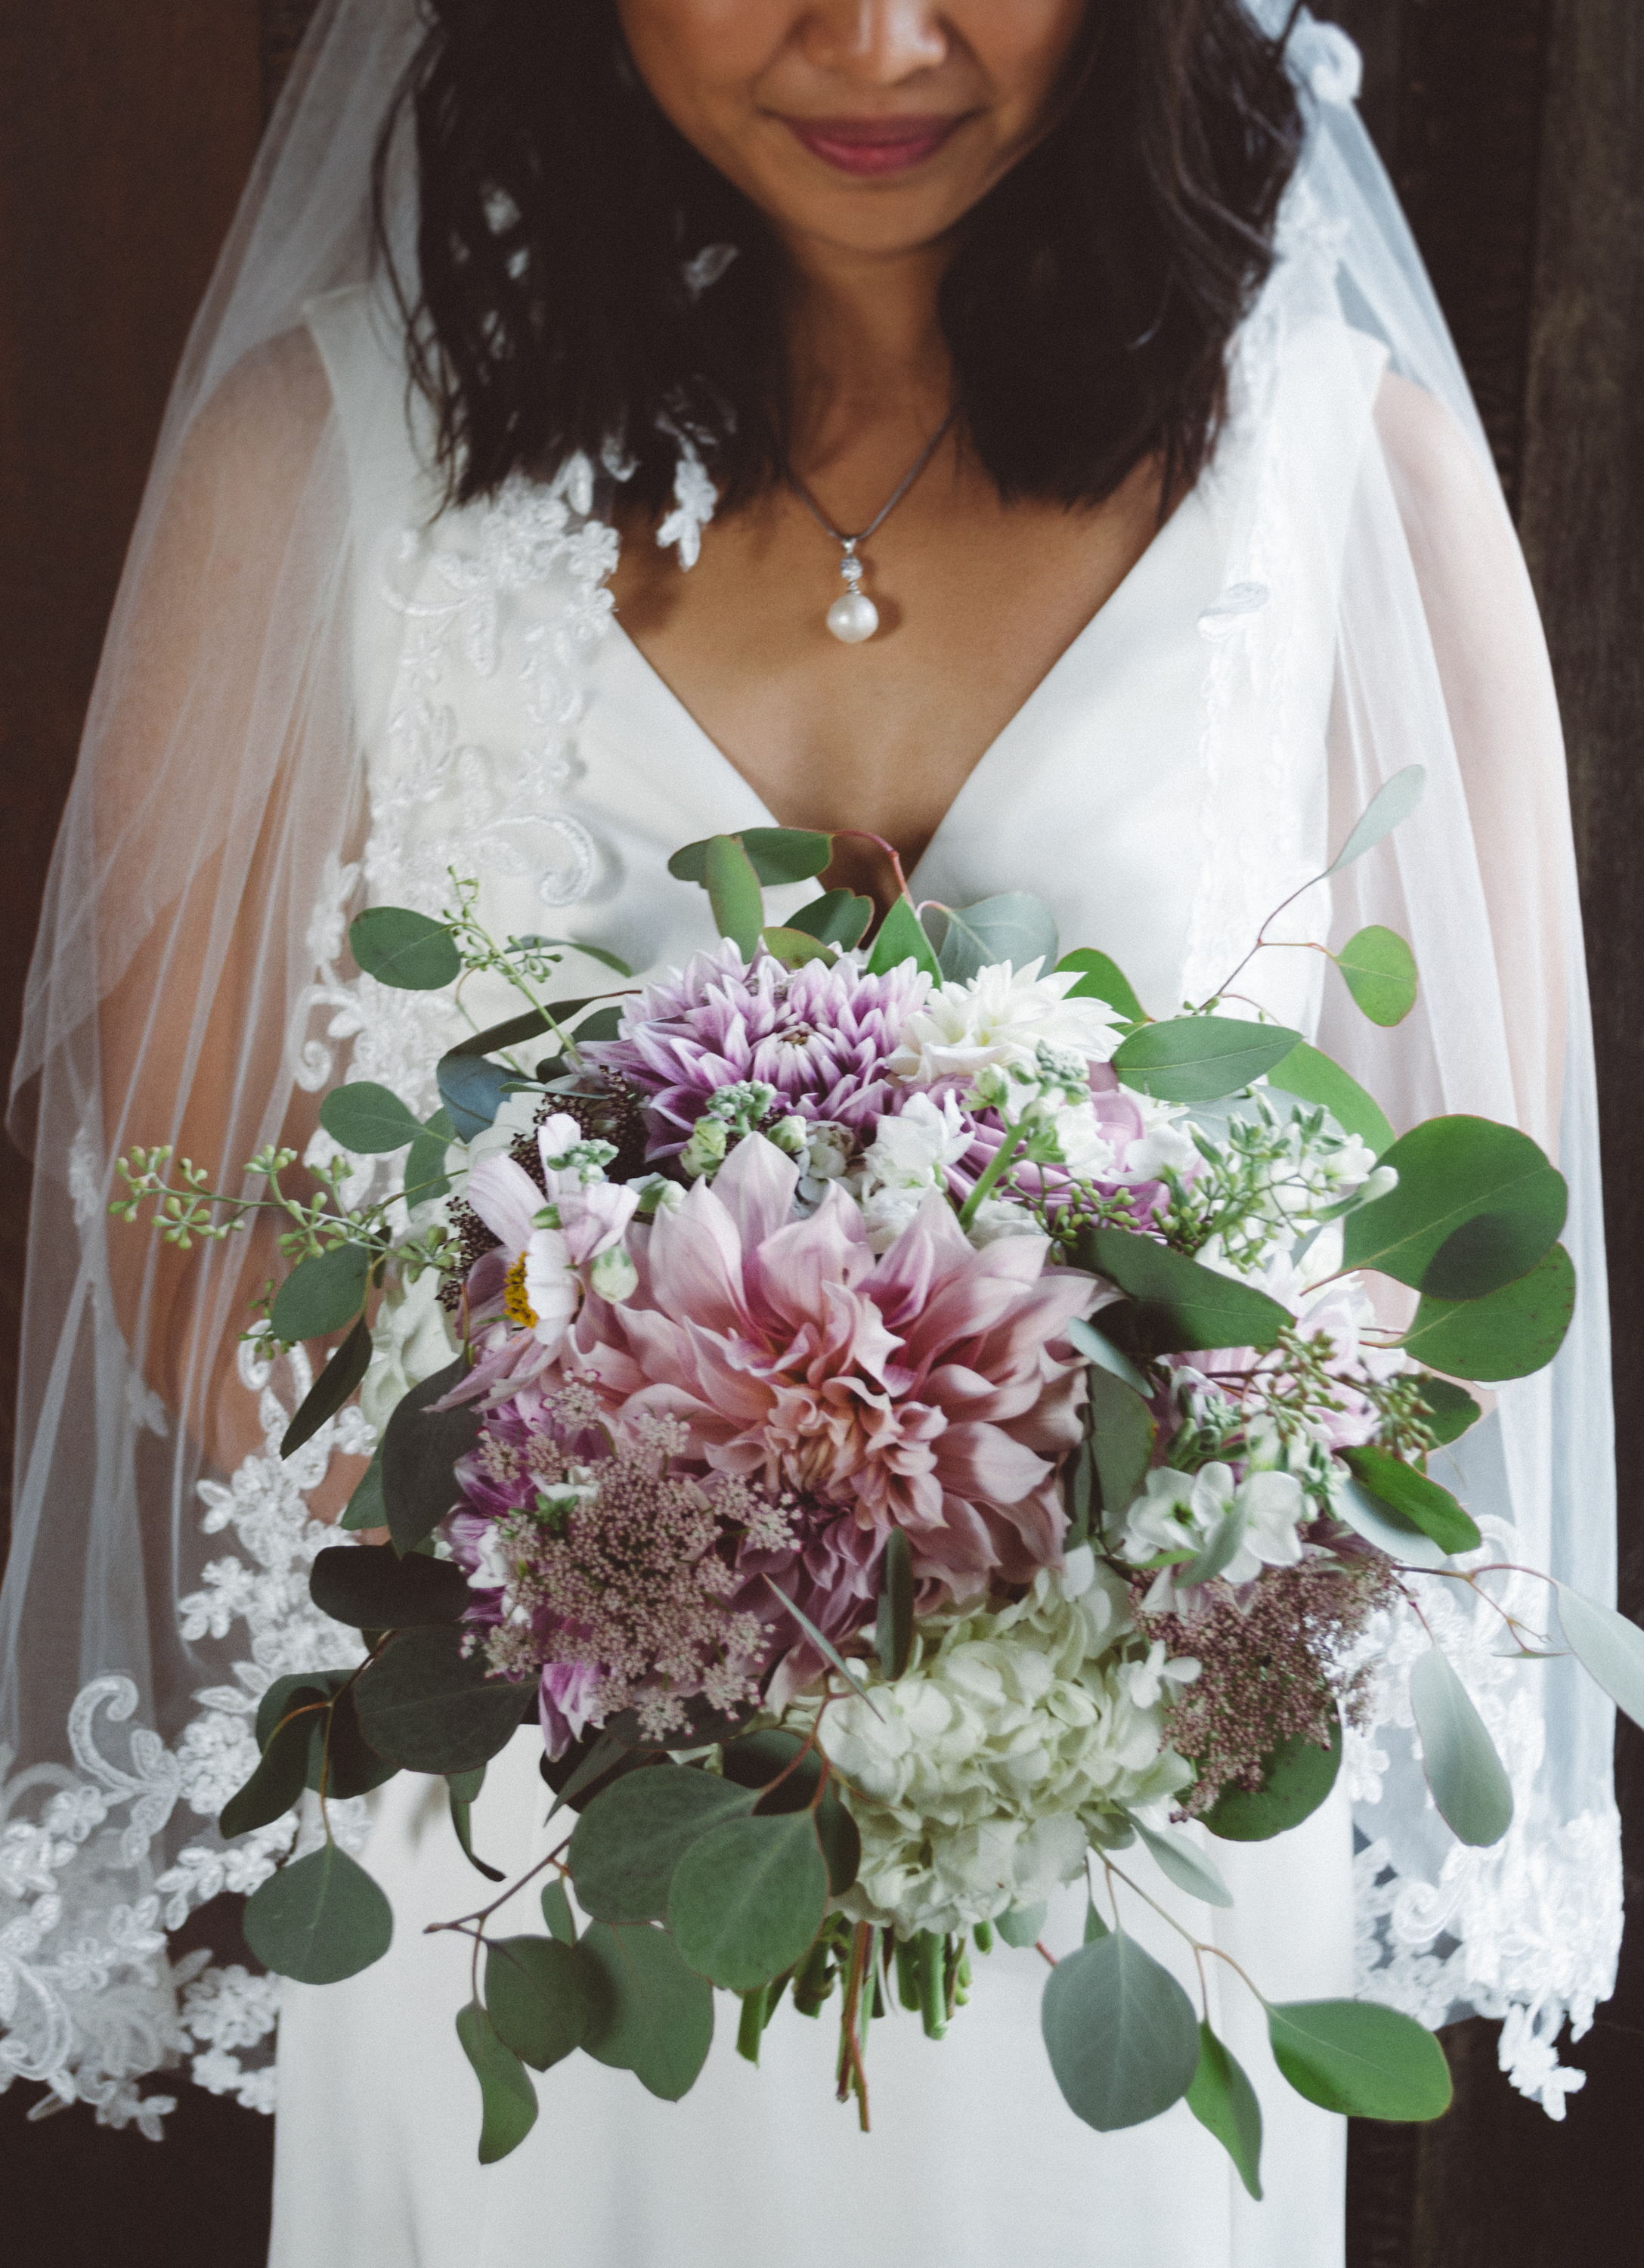 Northern Colorado bride with dahlia bouquet.